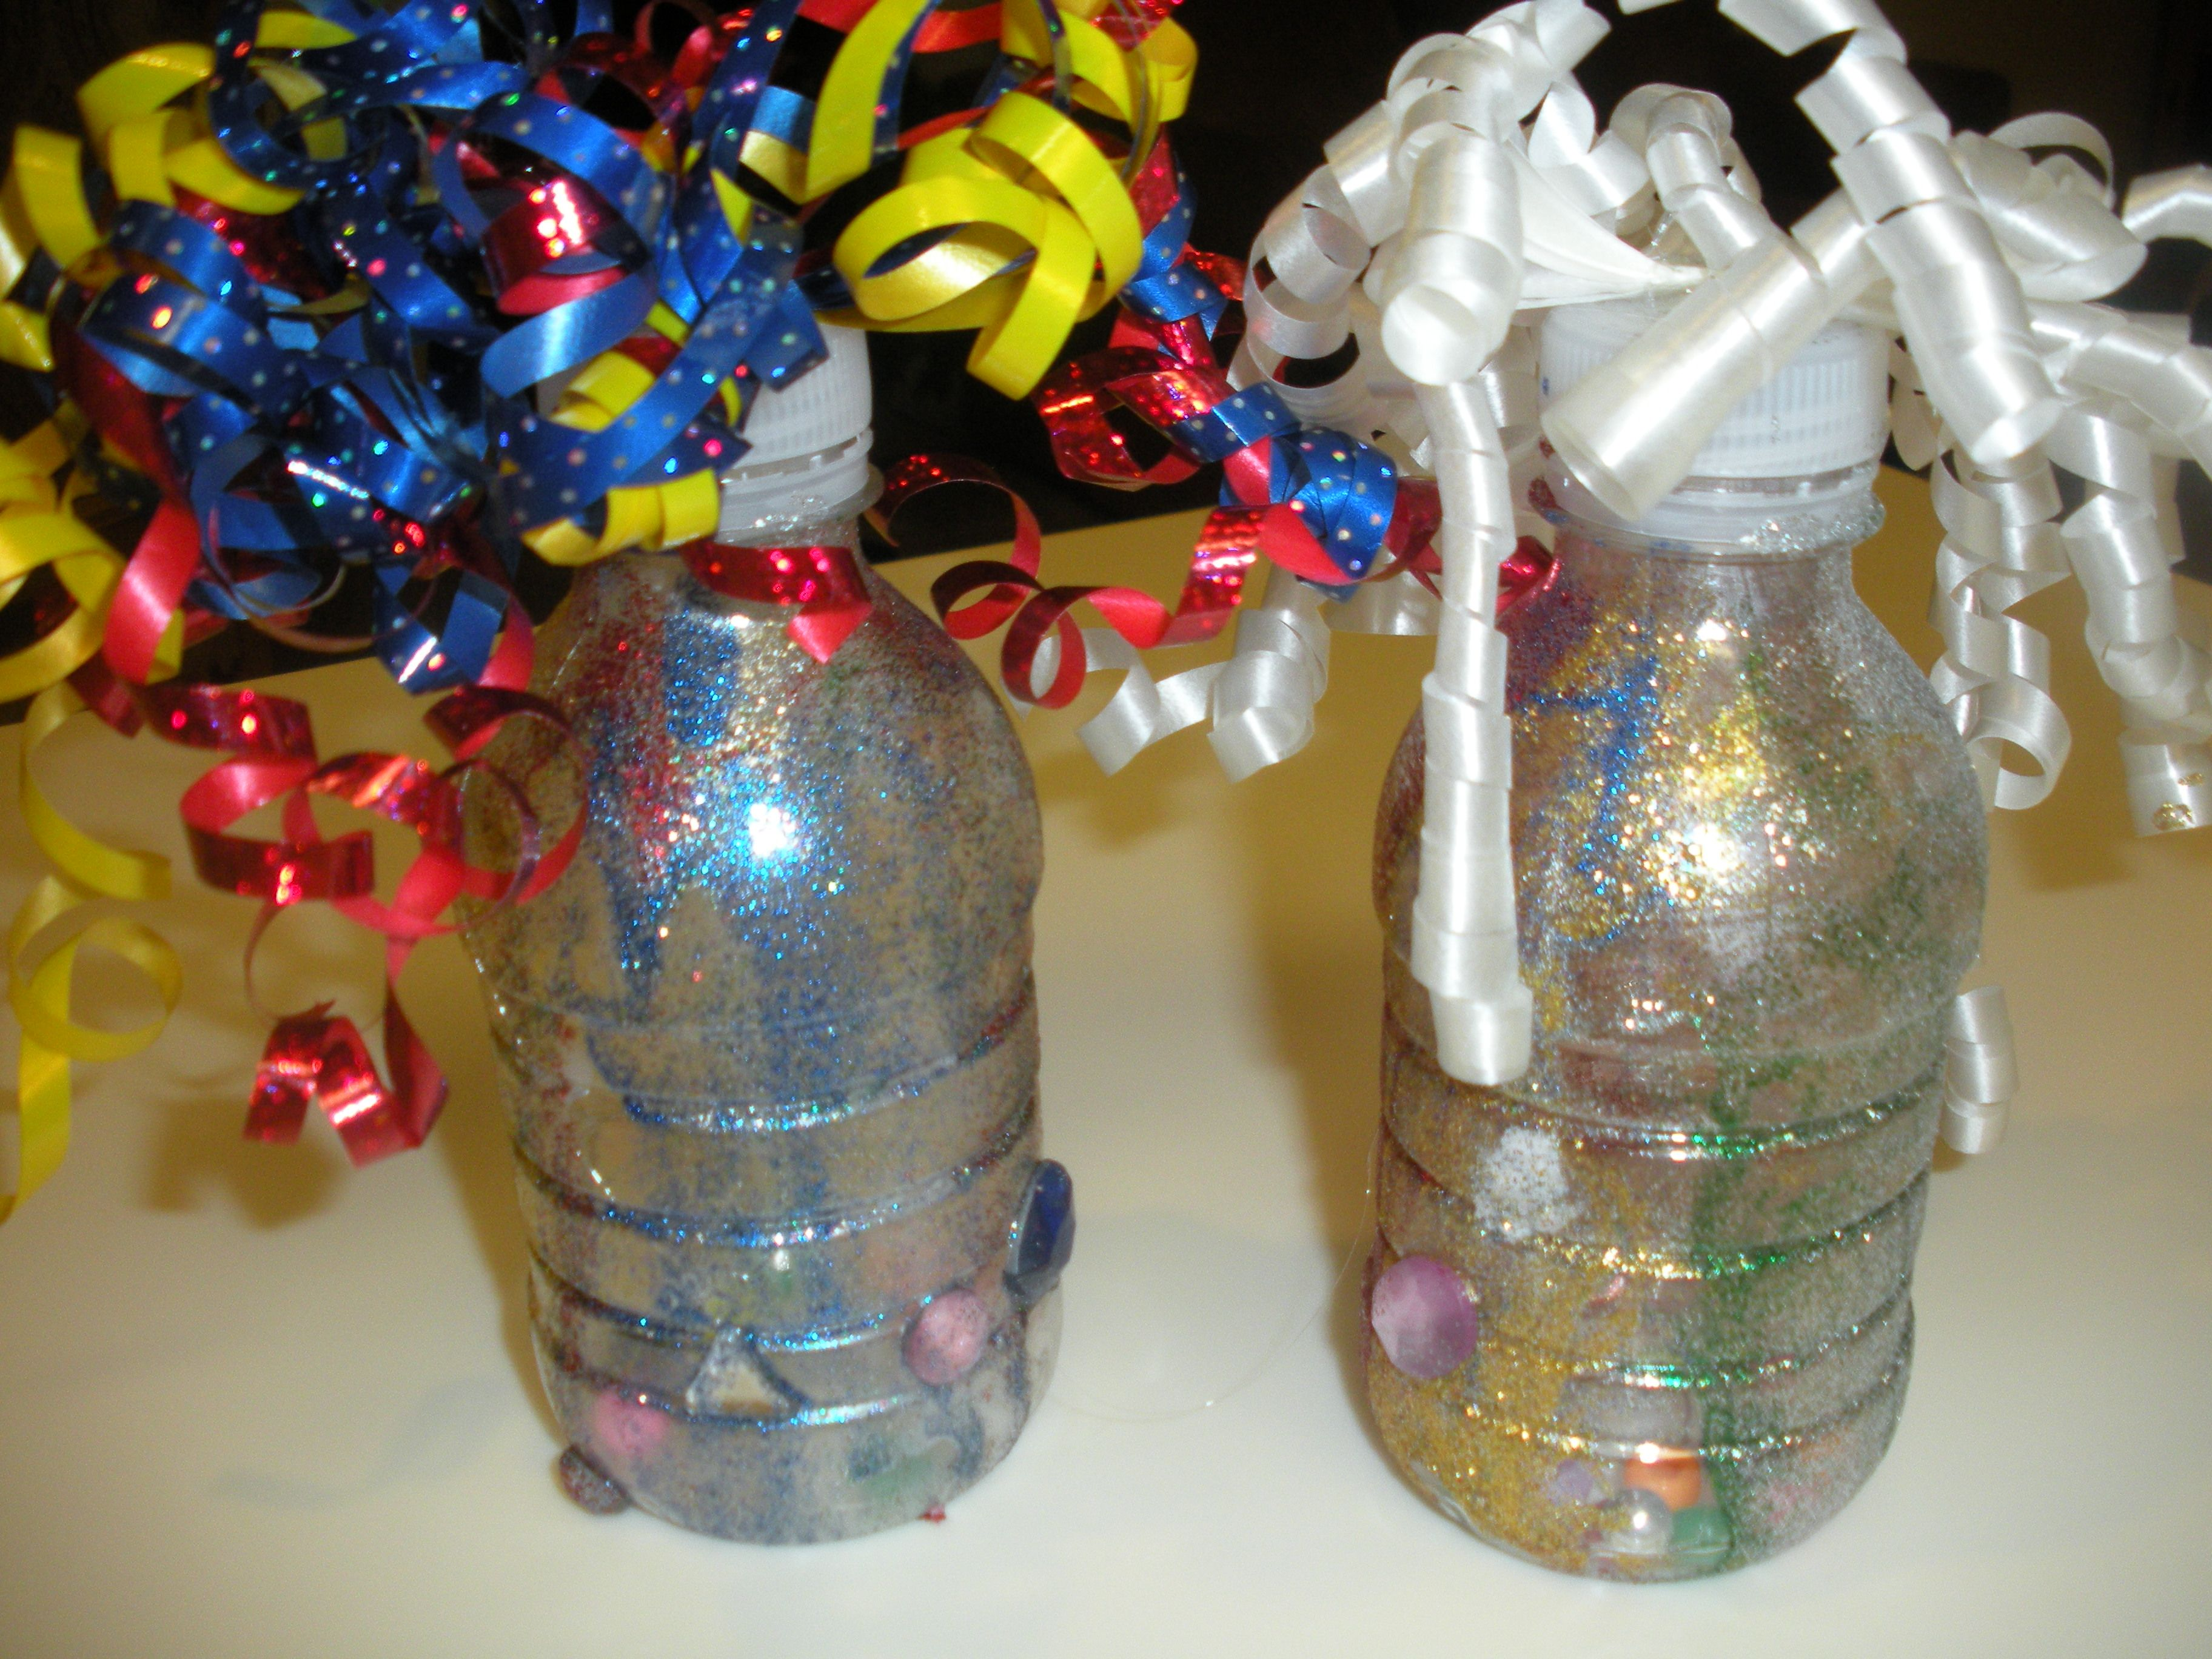 New Years Eve Craft Ideas For Kids Part - 38: Water Bottle Noise Maker New Years Eve Craft For Kids. Fun And Easy  Recycled Craft With Instructions And Tutorial By WunderMom On Adventures In  Wunderland.